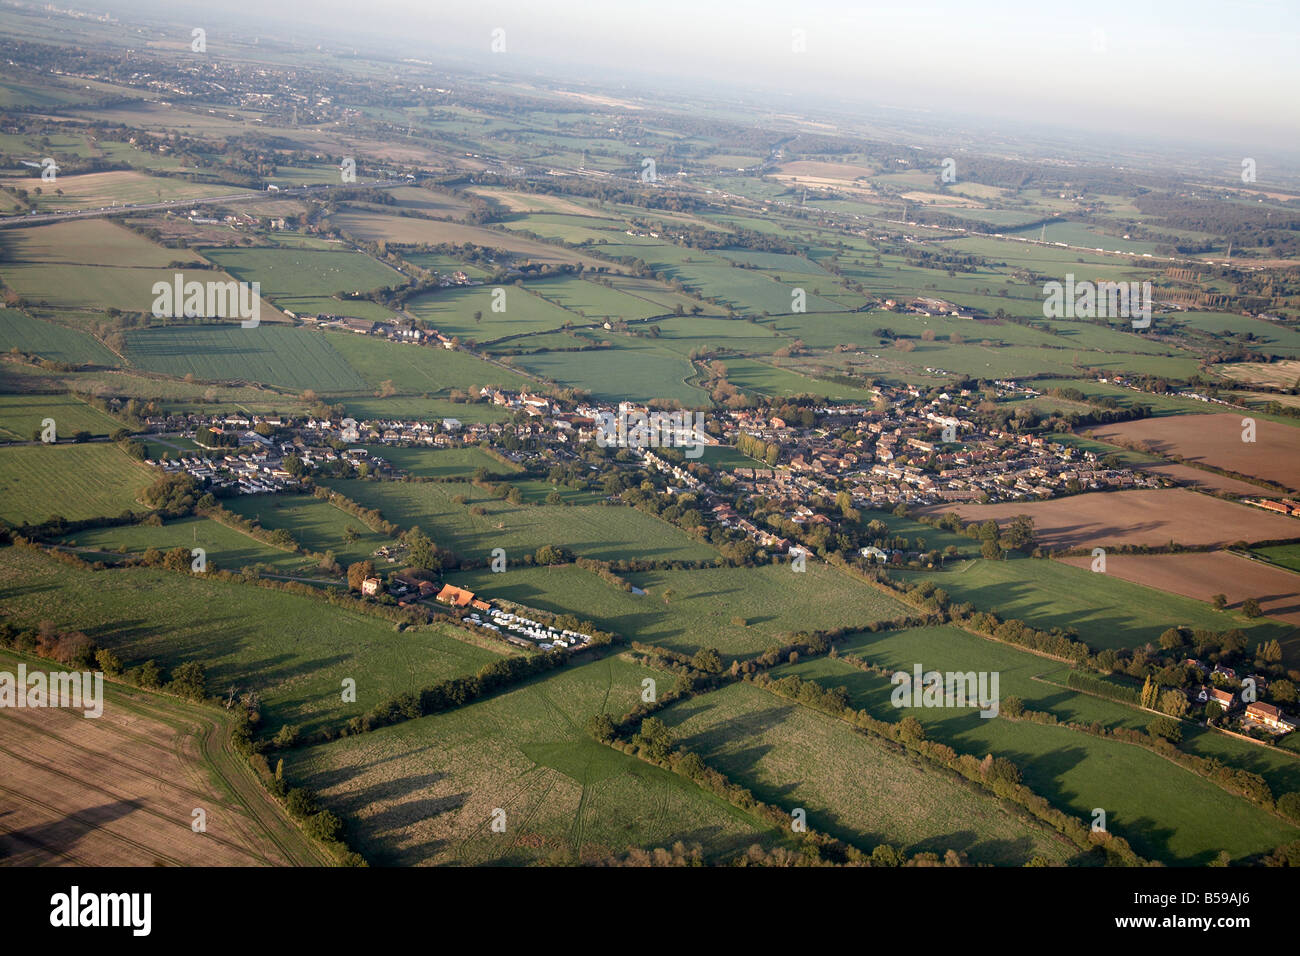 Aerial view north west of country houses Abridge caravan park Great Downs Farm Hoe Lane country fields Romford Epping - Stock Image